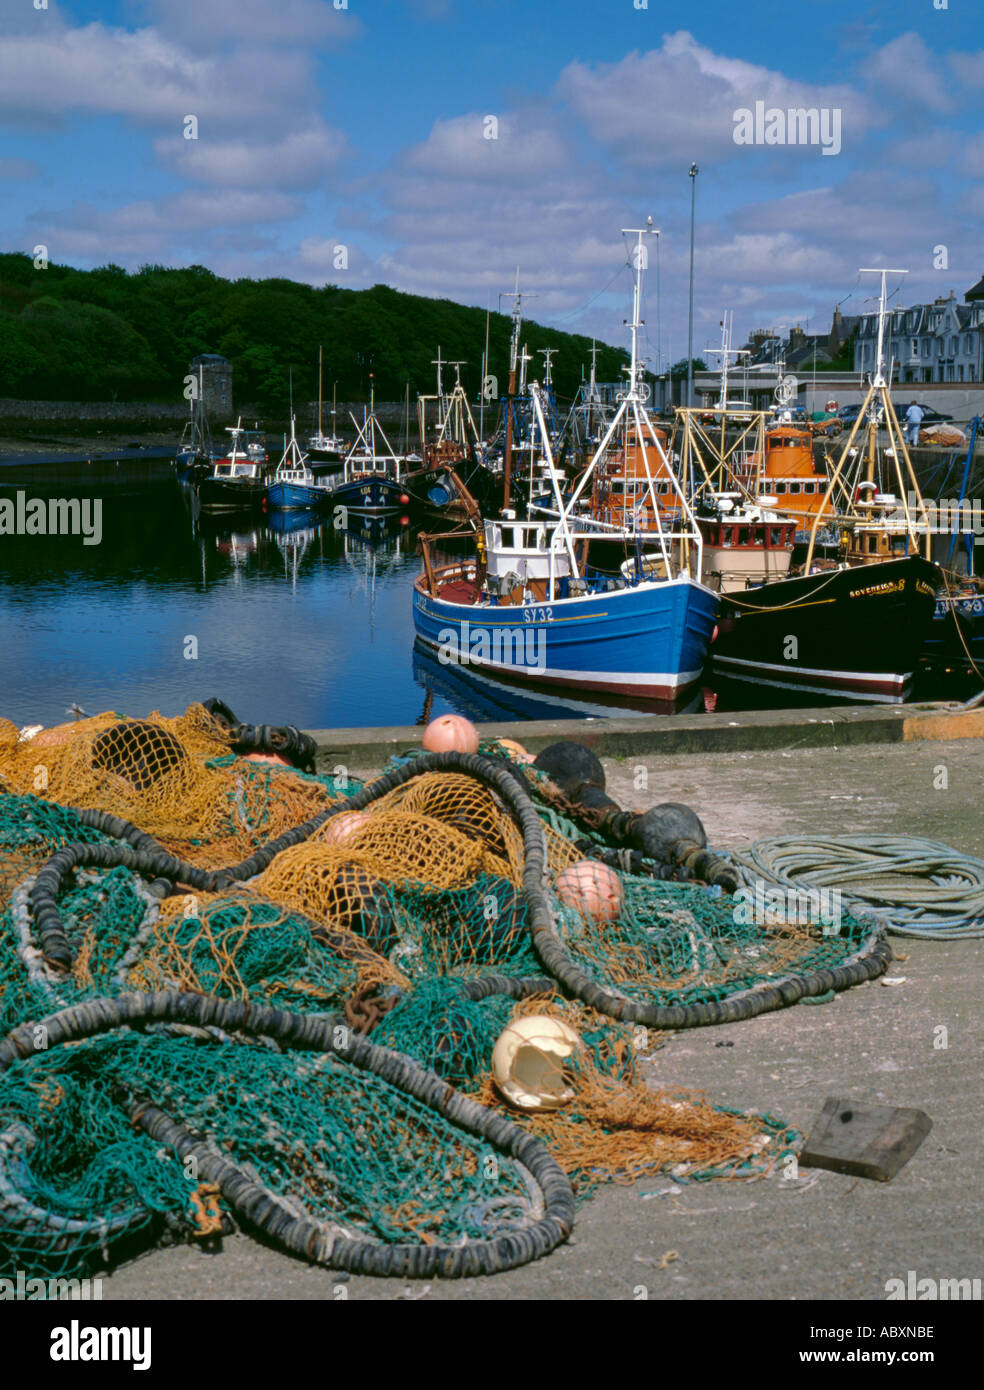 Fishing boats in harbour, Stornaway, Lewis, Outer Hebrides, Scotland, UK. - Stock Image